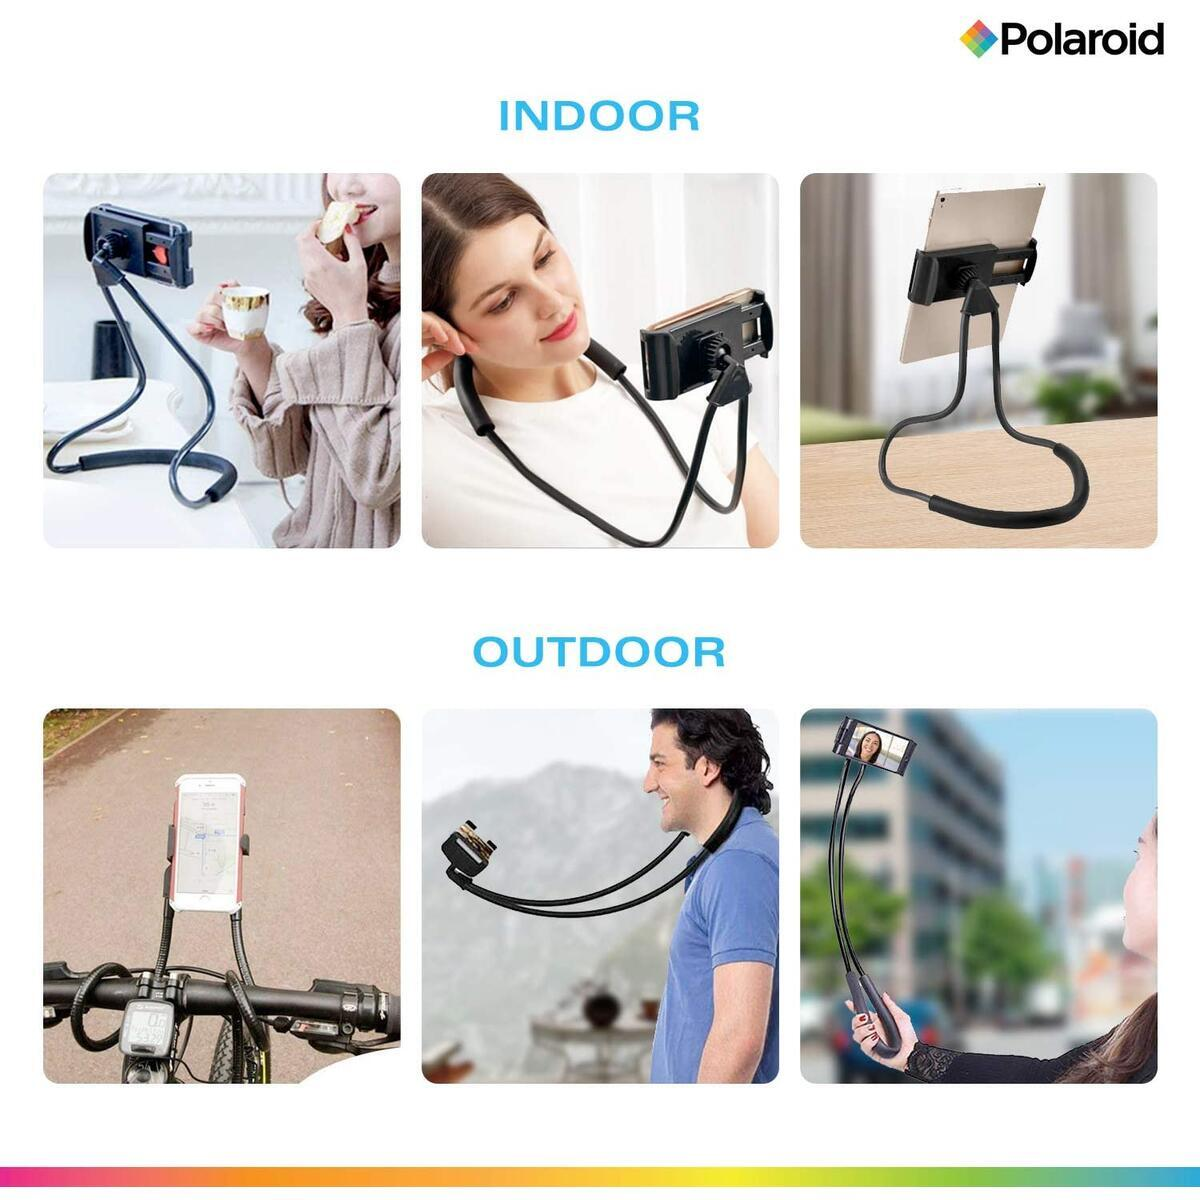 Polaroid Flexible Neck Phone Holder, Gooseneck Hands Free SmartPhone Mount – Adjustable Selfie Stick - Vlogging, Video Call, Streaming – Universal, Will Work with iPhone, iPad, Galaxy, Switch – Black